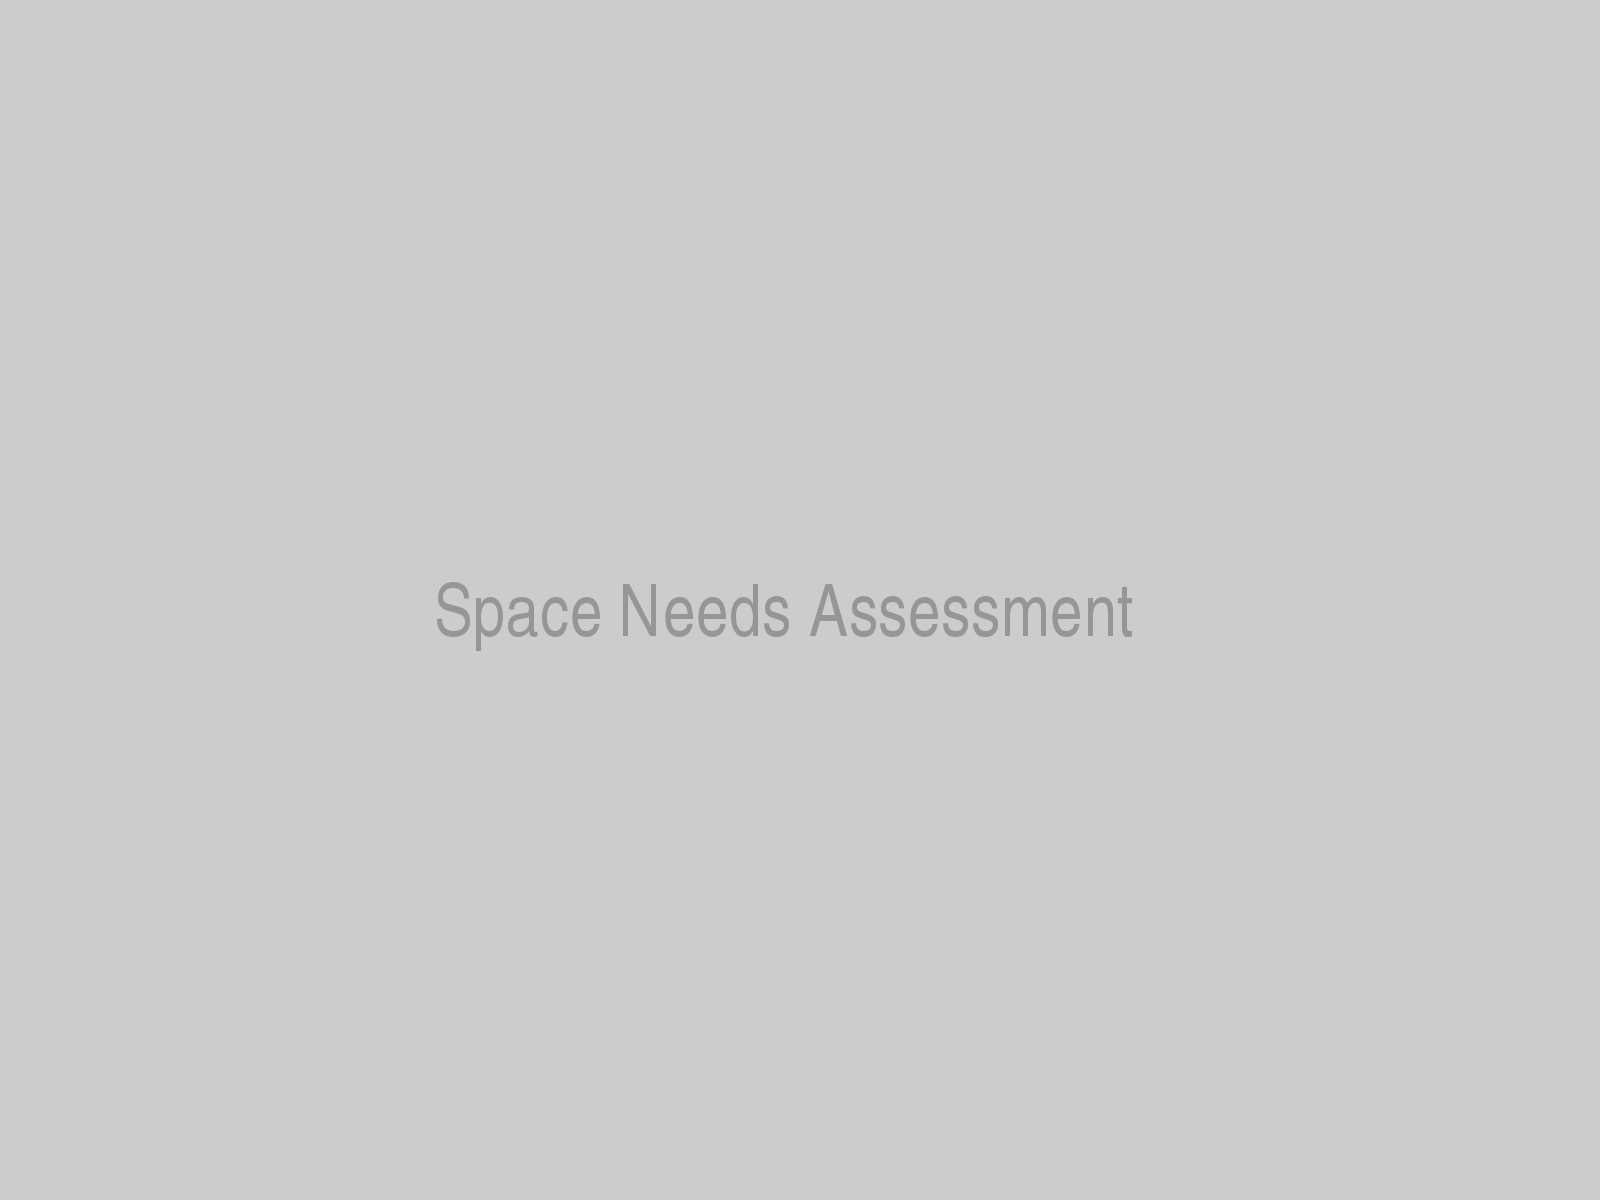 Space Needs Assessment